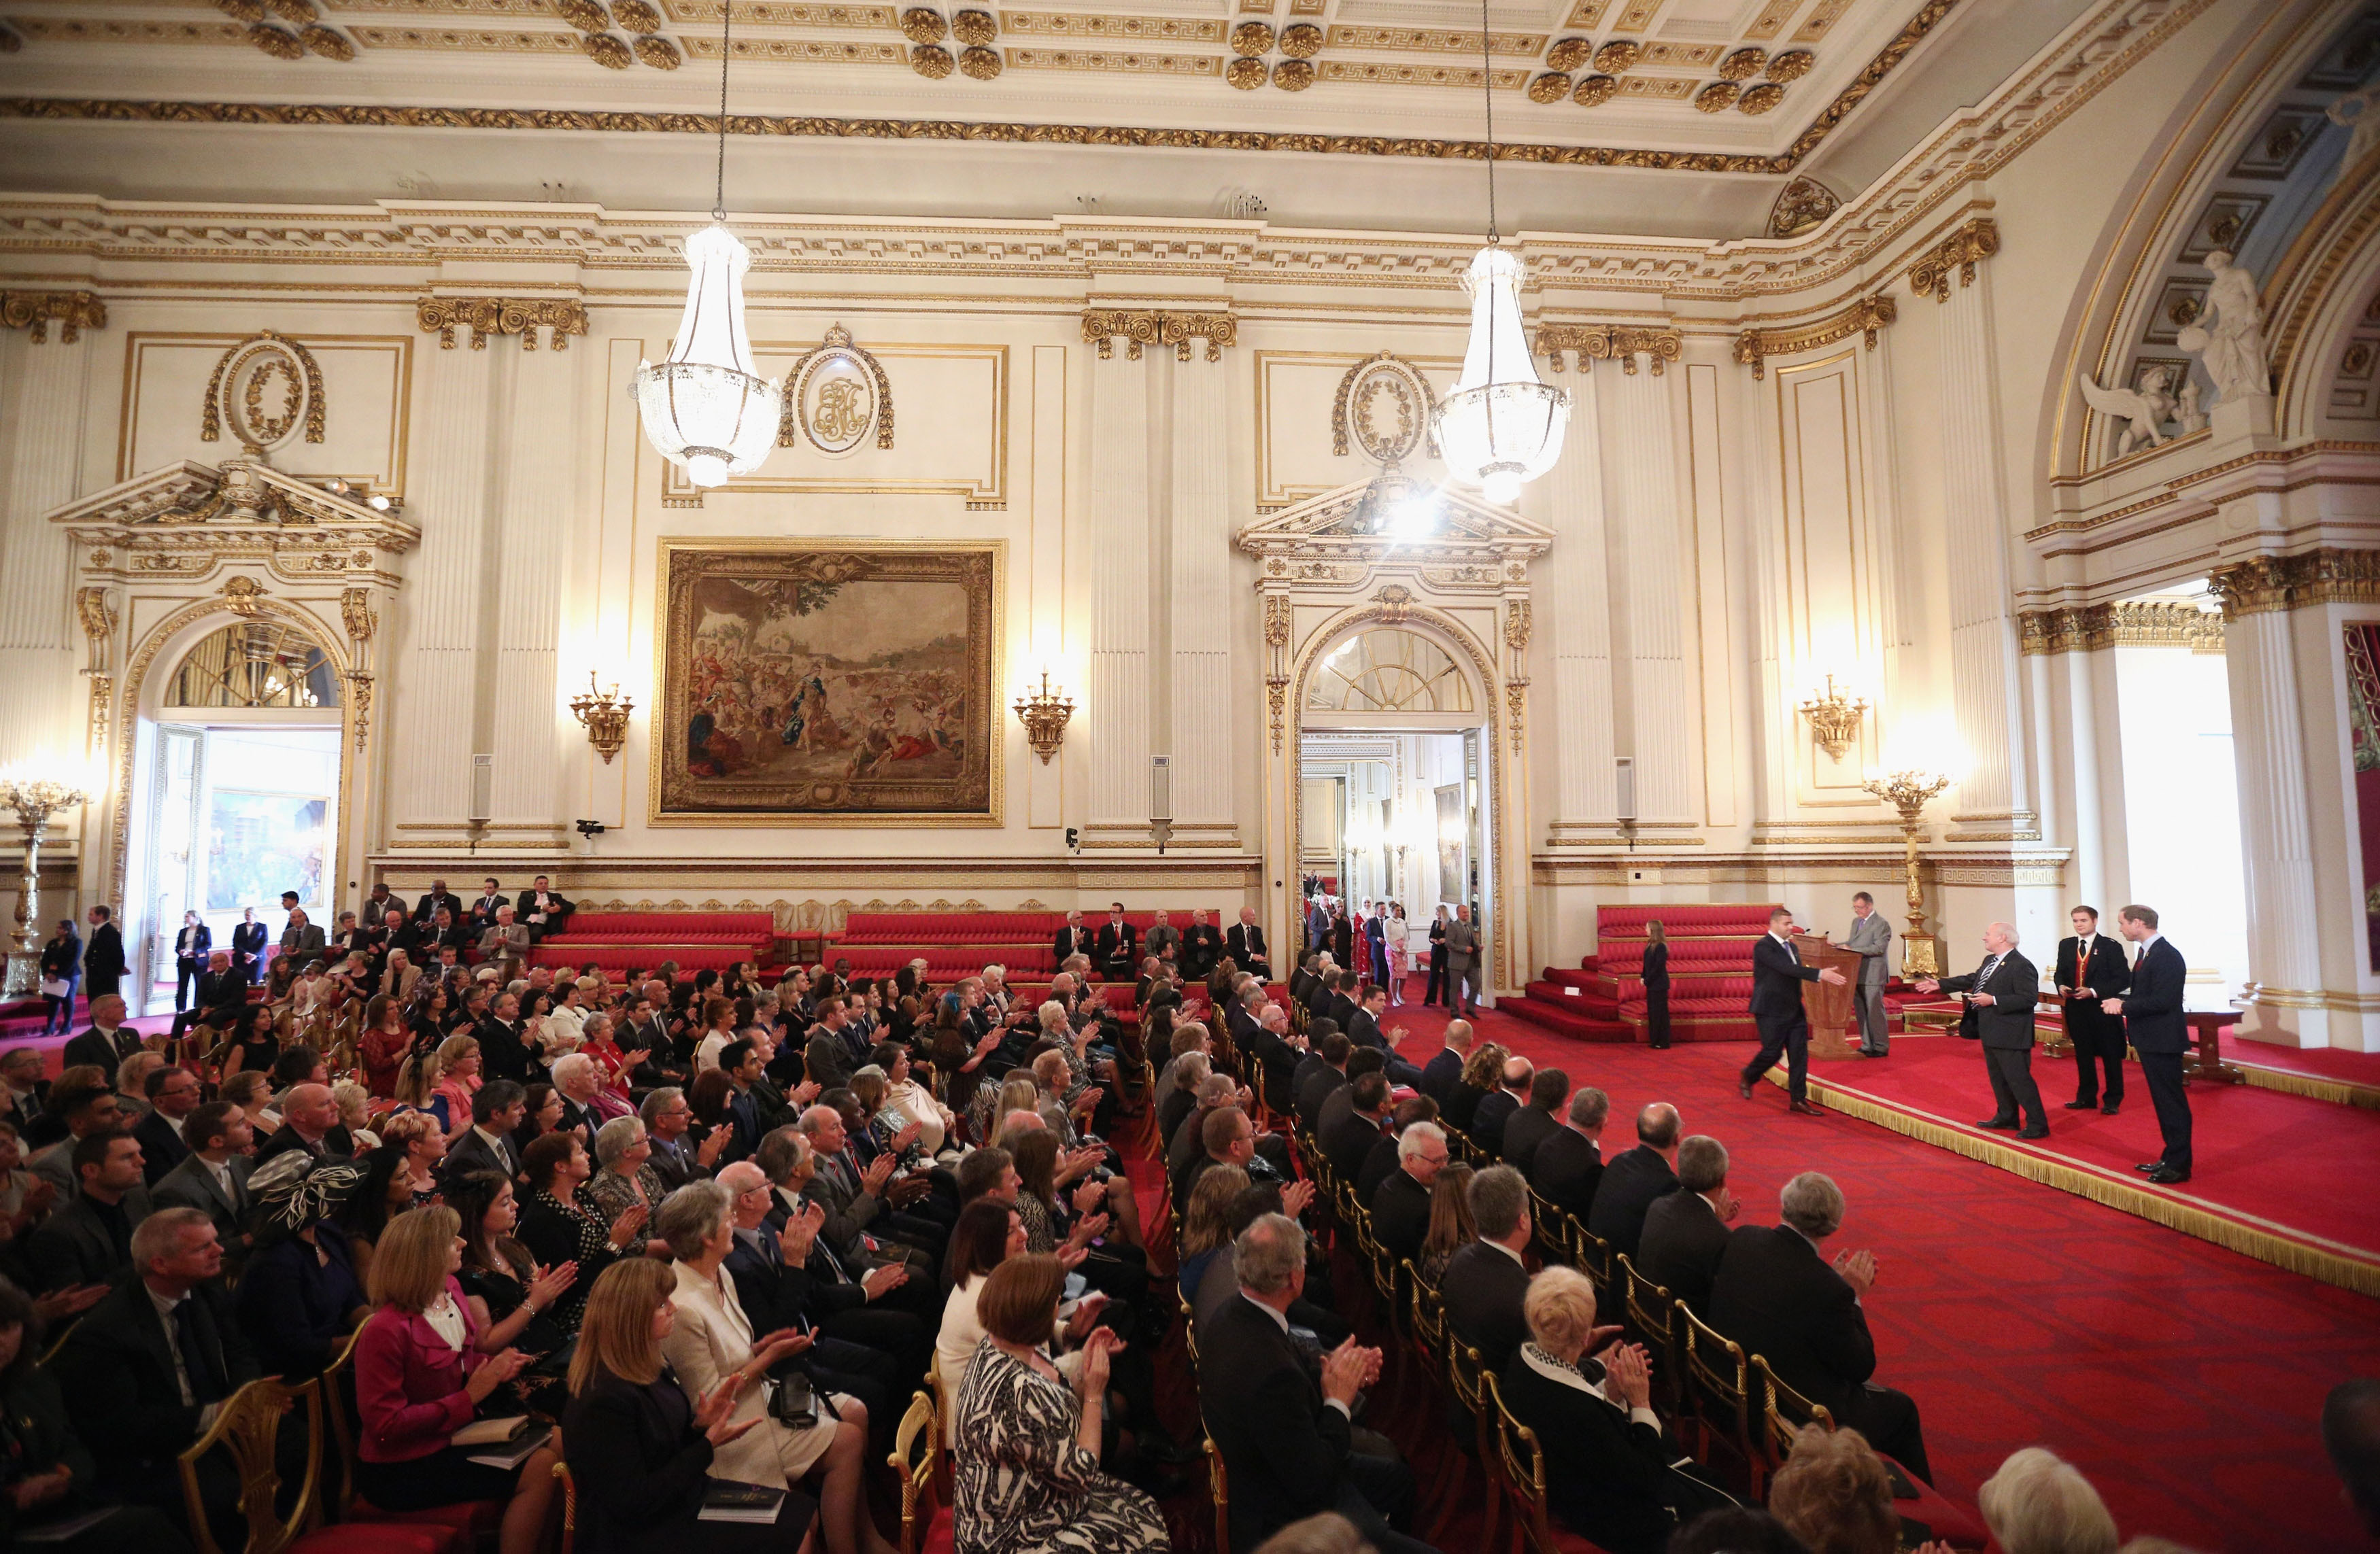 LONDON, ENGLAND - OCTOBER 07: Prince William, Duke of Cambridge, in his role as President of The Football Association, and Greg Dyke, the Chairman of the FA, award medals to the FA's 150 Grassroots Heroes in the Ballroom of Buckingham Palace on October 7, 2013 in London, England. 150 volunteers who work to support grassroots football. were presented with a medal by The Duke of Cambridge and Greg Dyke, the Charmian of the Football Association. To celebrate 150 years of the FA, an official Southern Amateur League fixture football match will take place in the grounds of Buckingham Palace between two of the oldest amateur clubs in England. The match will be played between Civil Service FC, the sole surviving club from the eleven that met to create The FA in 1863, and Polytechnic FC, which was formed in 1875.. (Photo by Oli Scarff - WPA Pool /Getty Images)